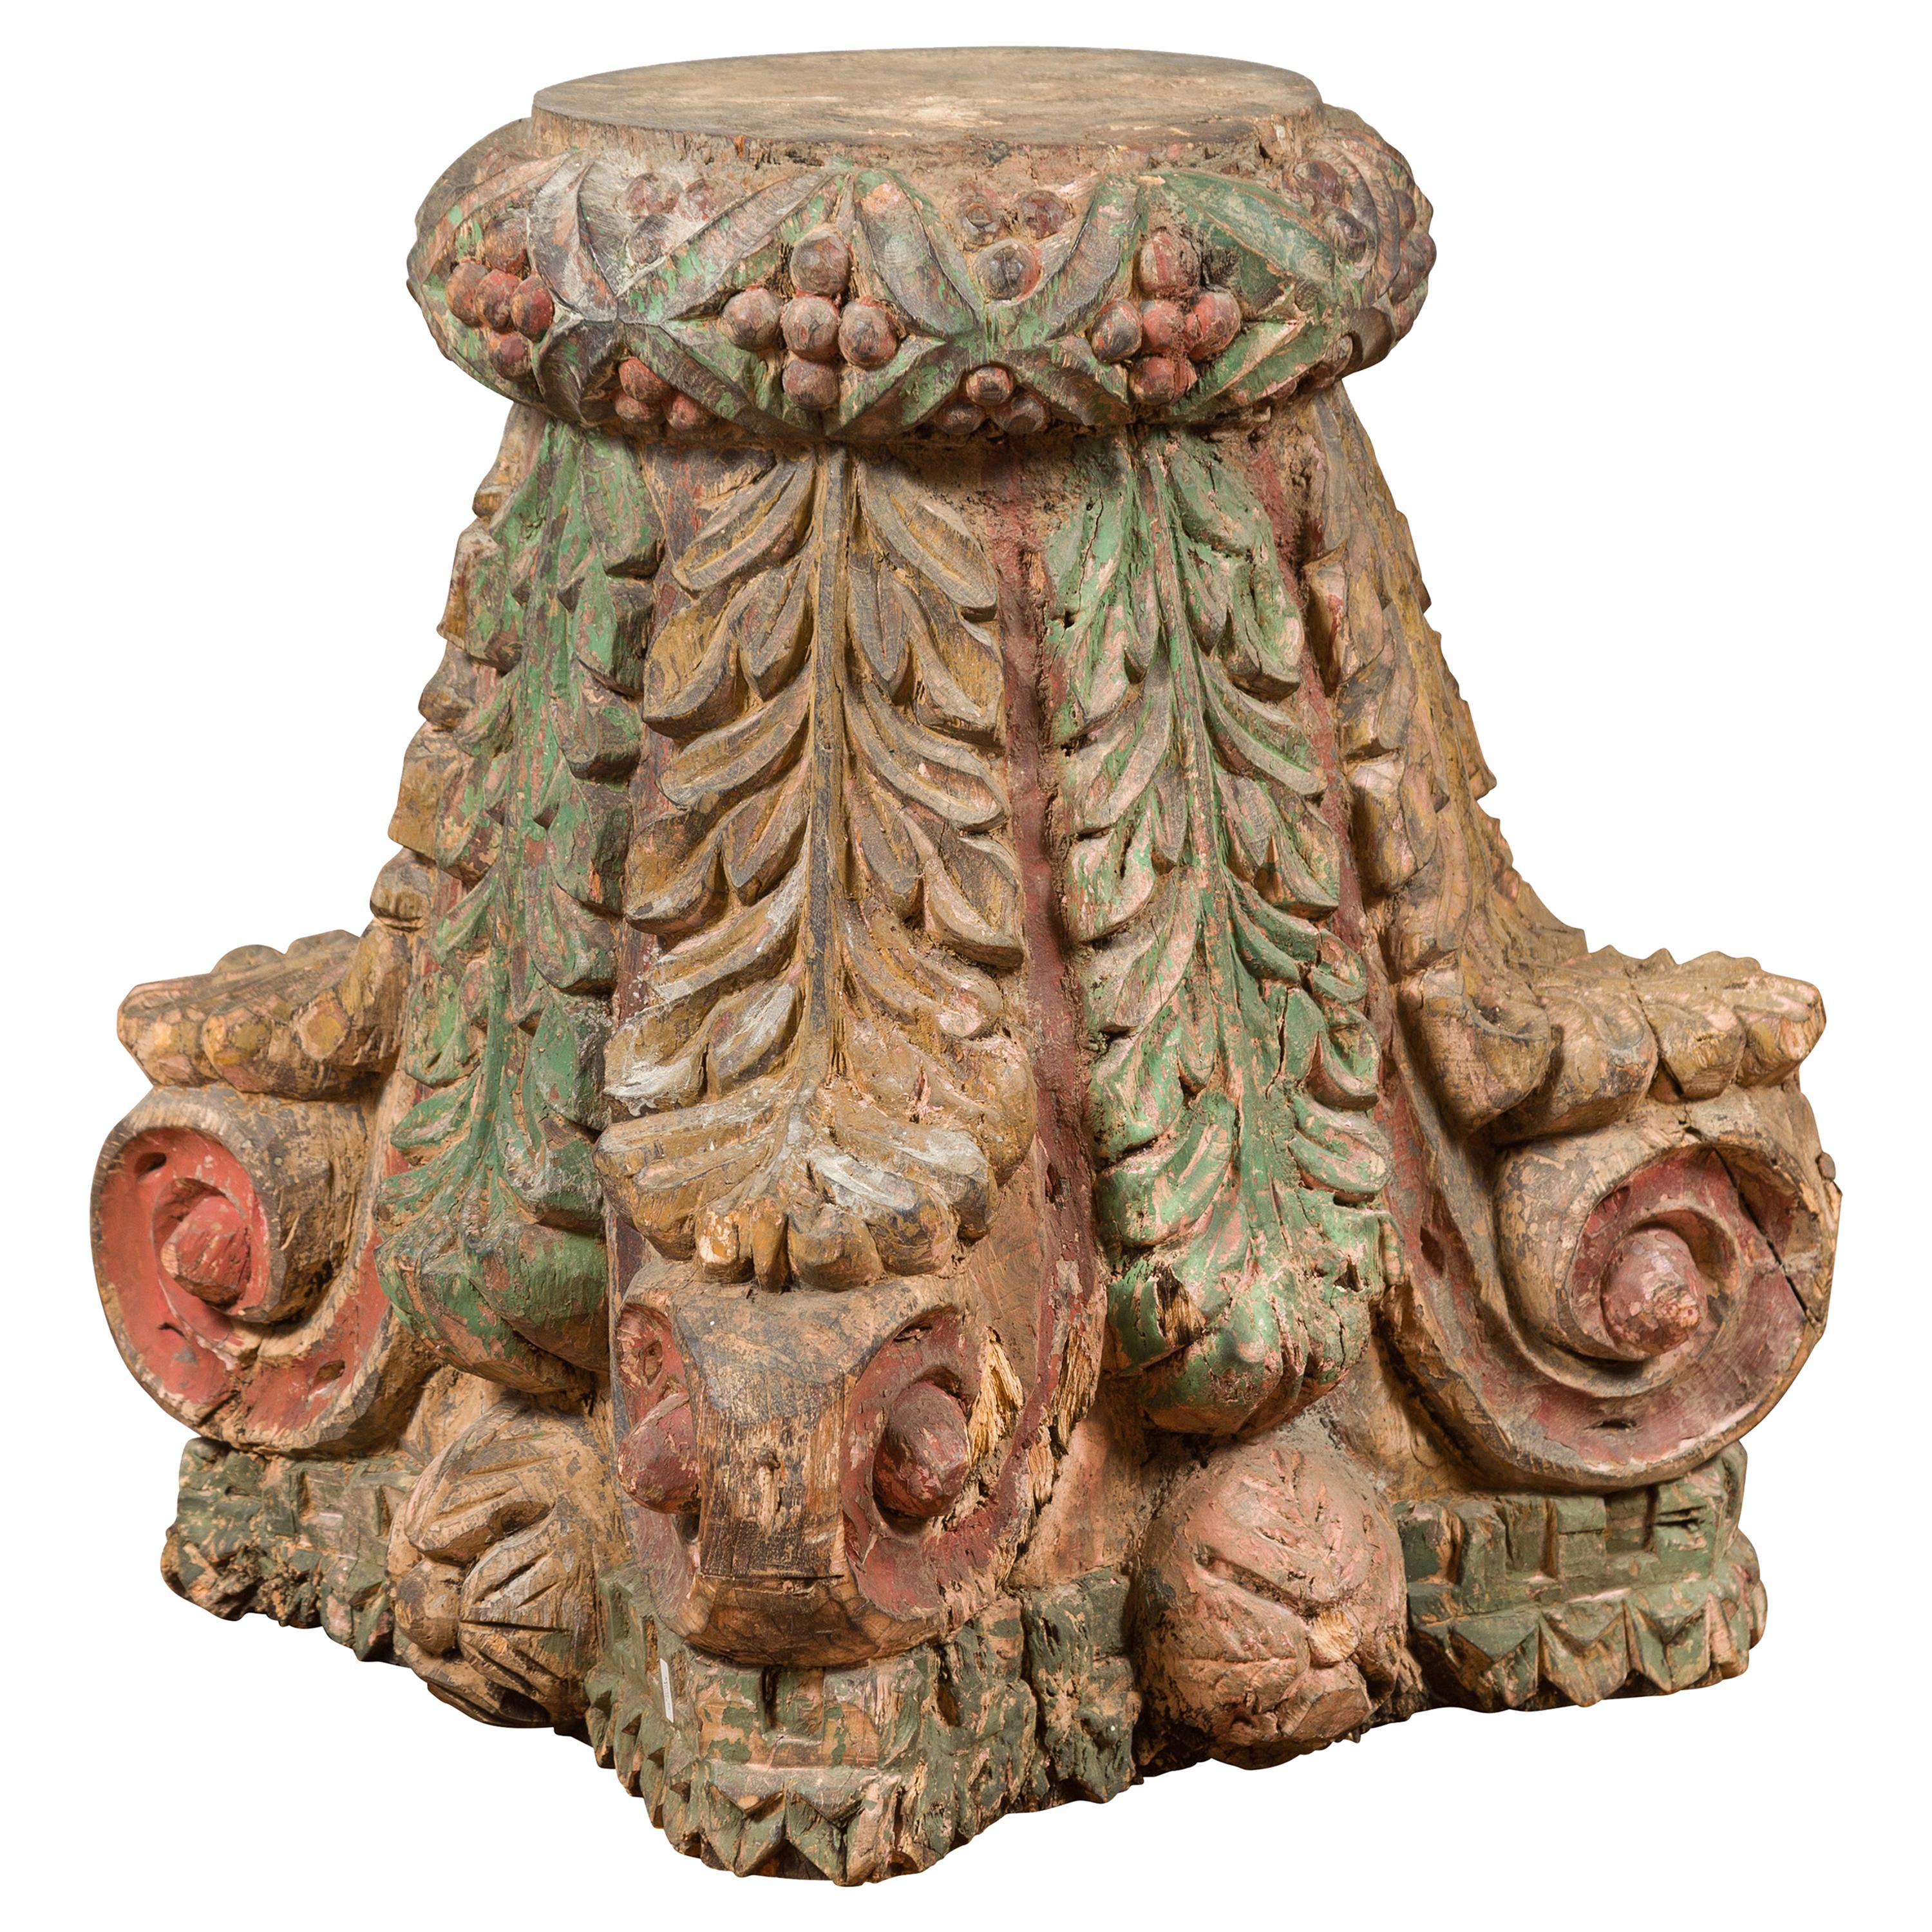 Indian Antique Temple Foliage Carved Capital with Original Green and Red Paint